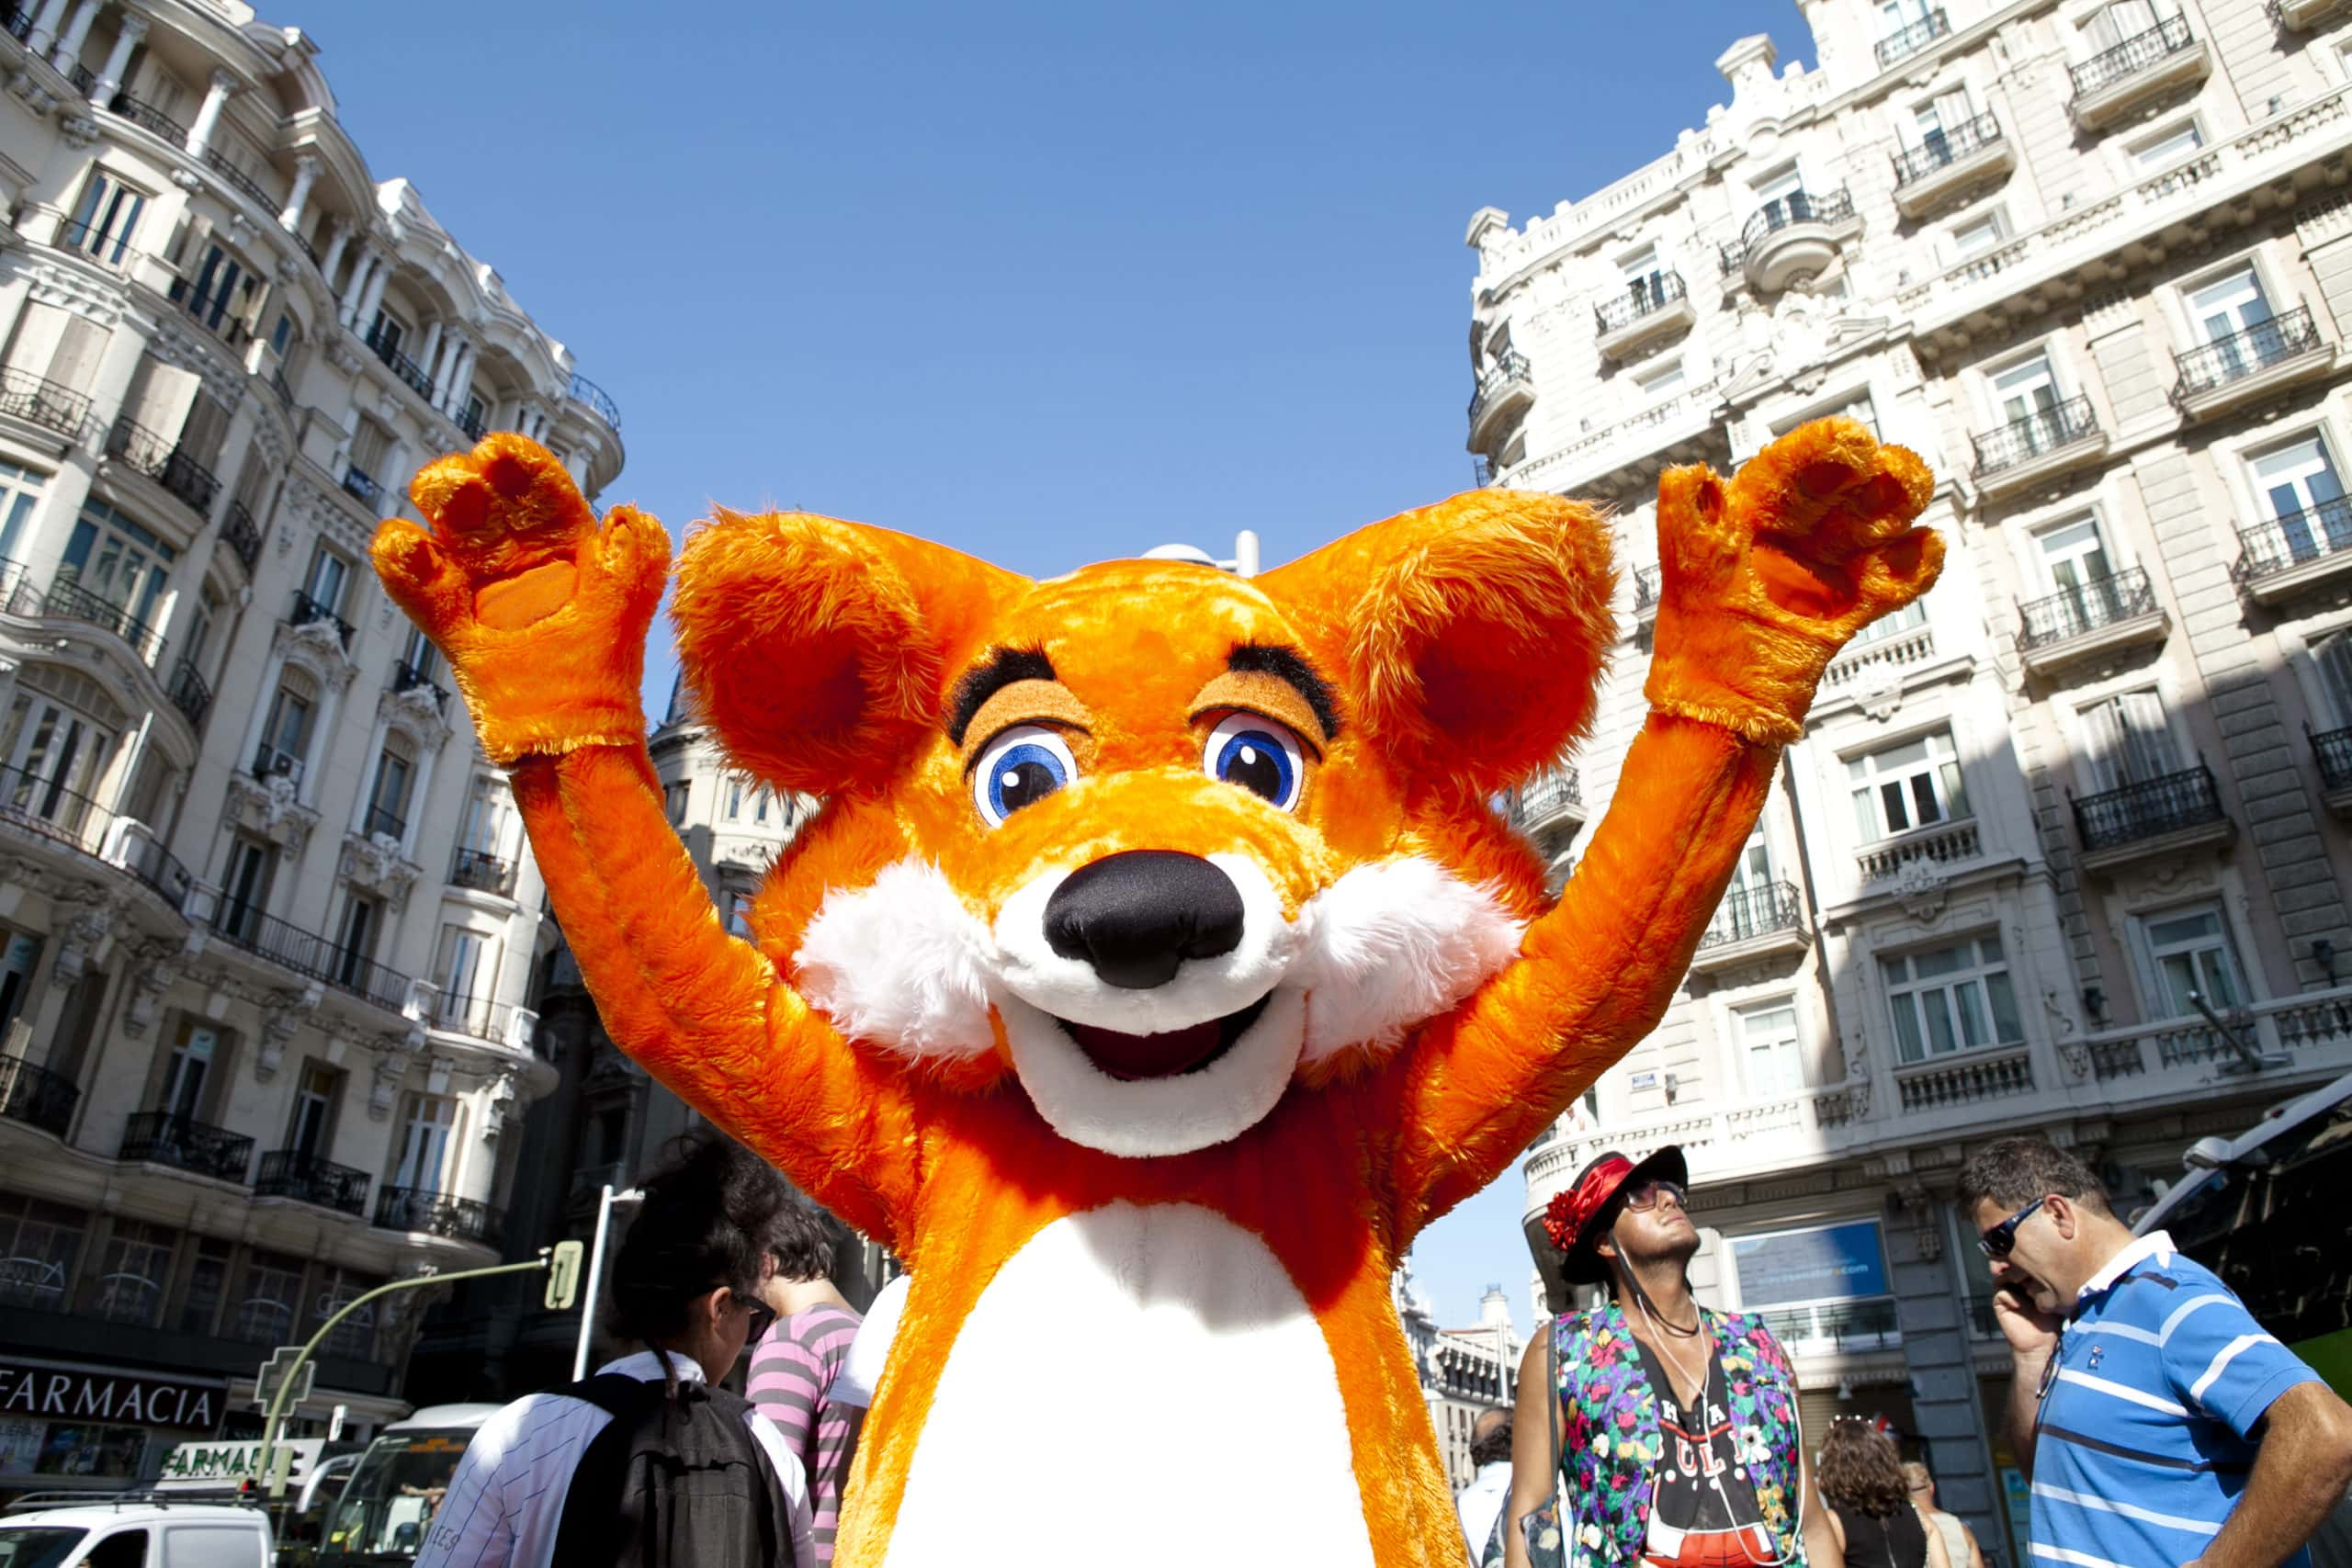 Someone in a Firefox costume